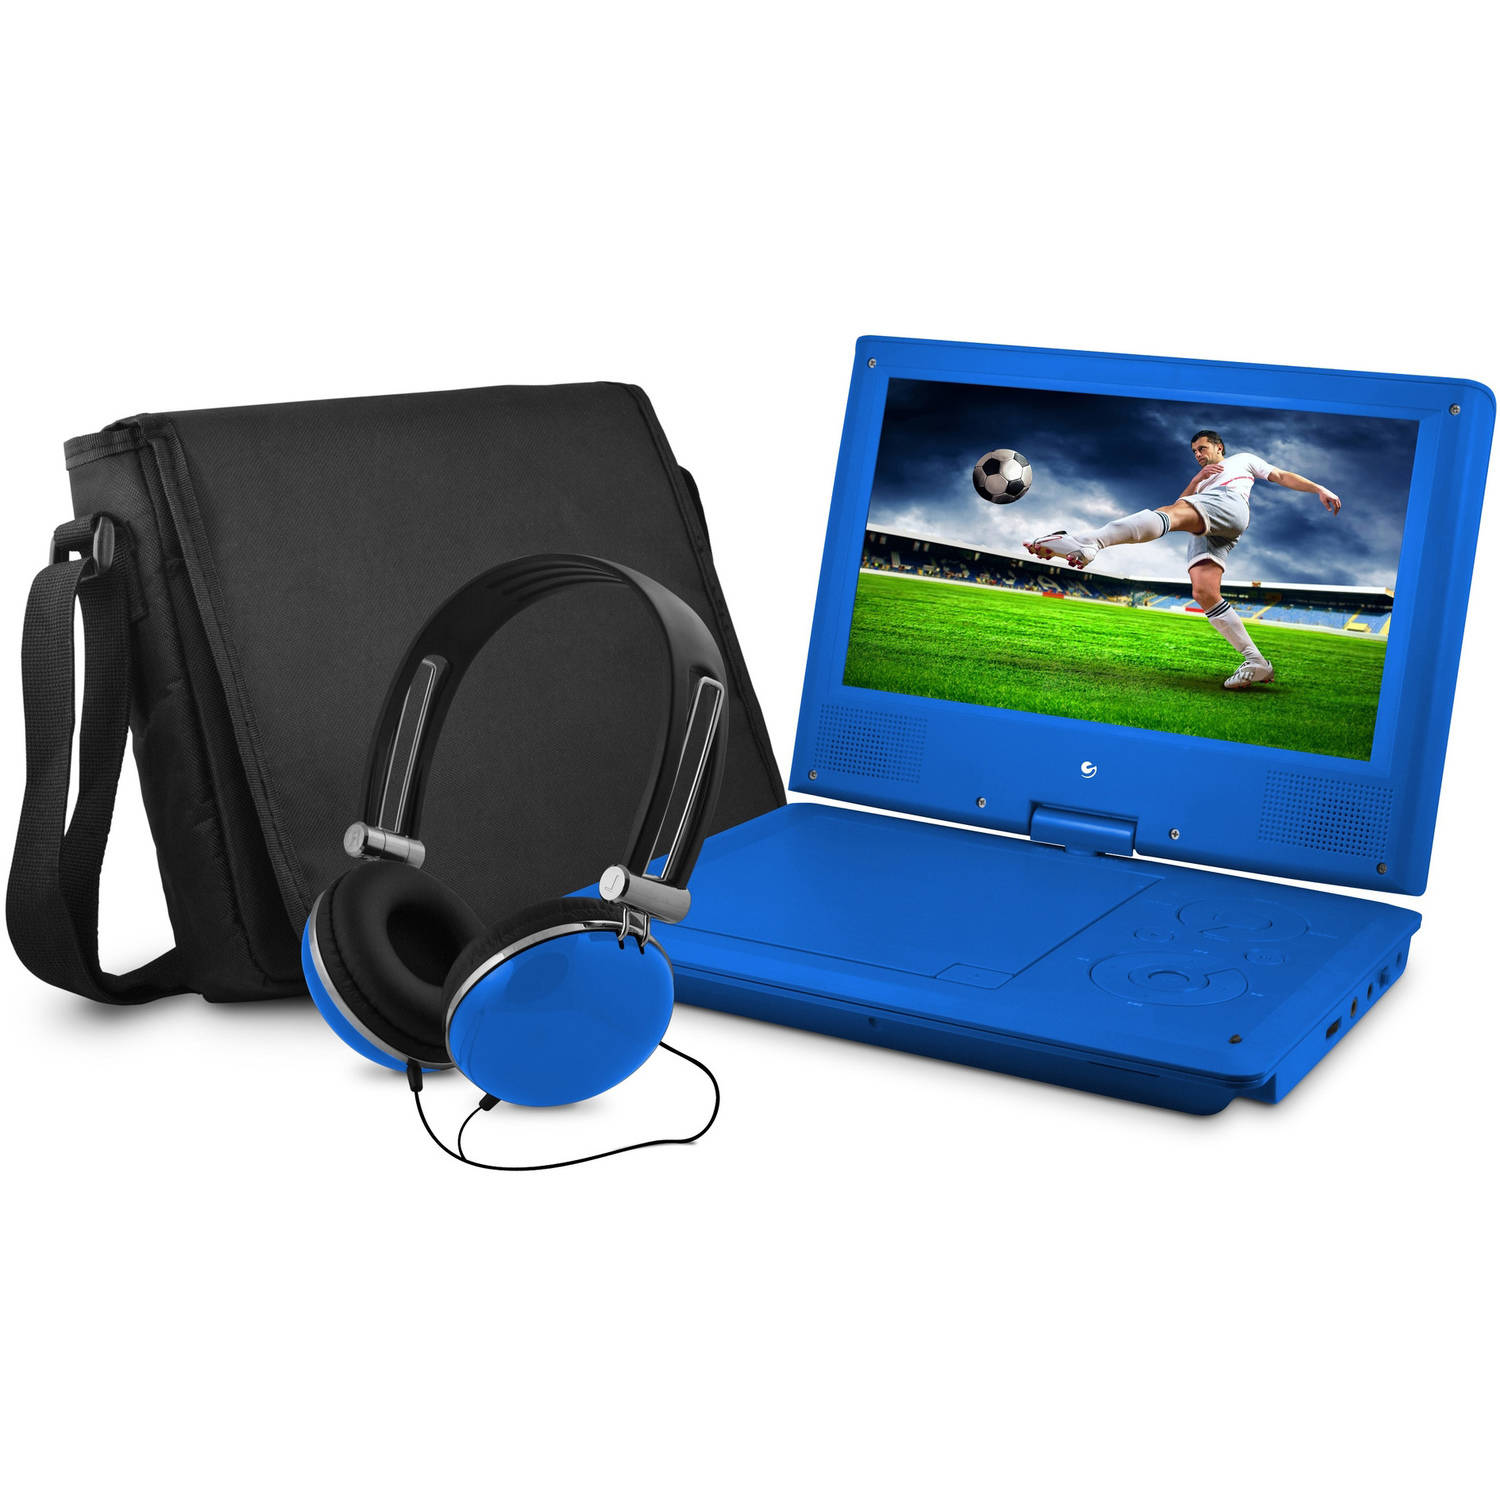 "Ematic 9"" Portable DVD Player with Matching Headphones and Bag"